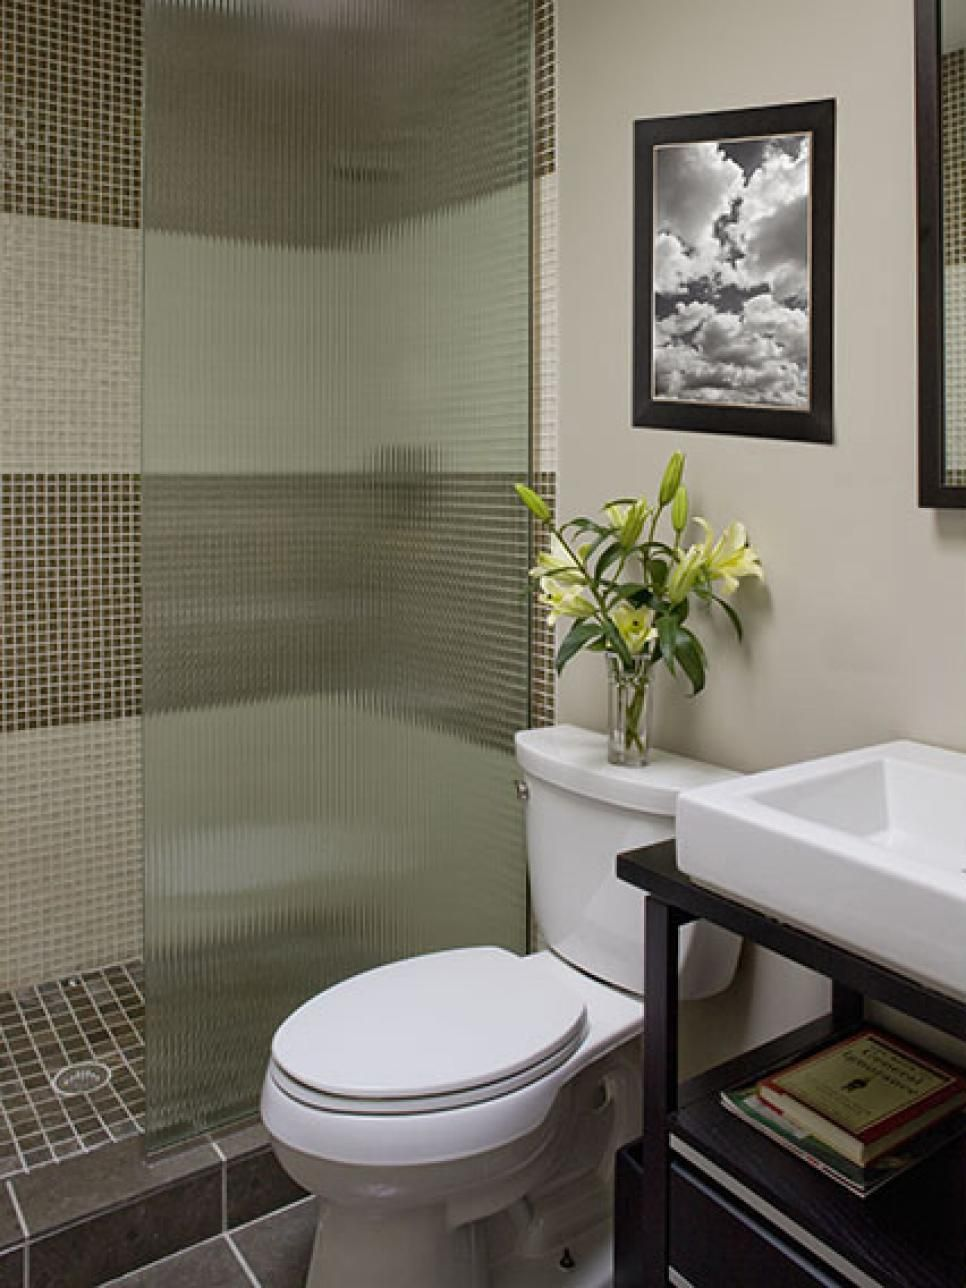 Bathroom Layouts That Work Small Spaces Spaces And Room - Design your bathroom layout